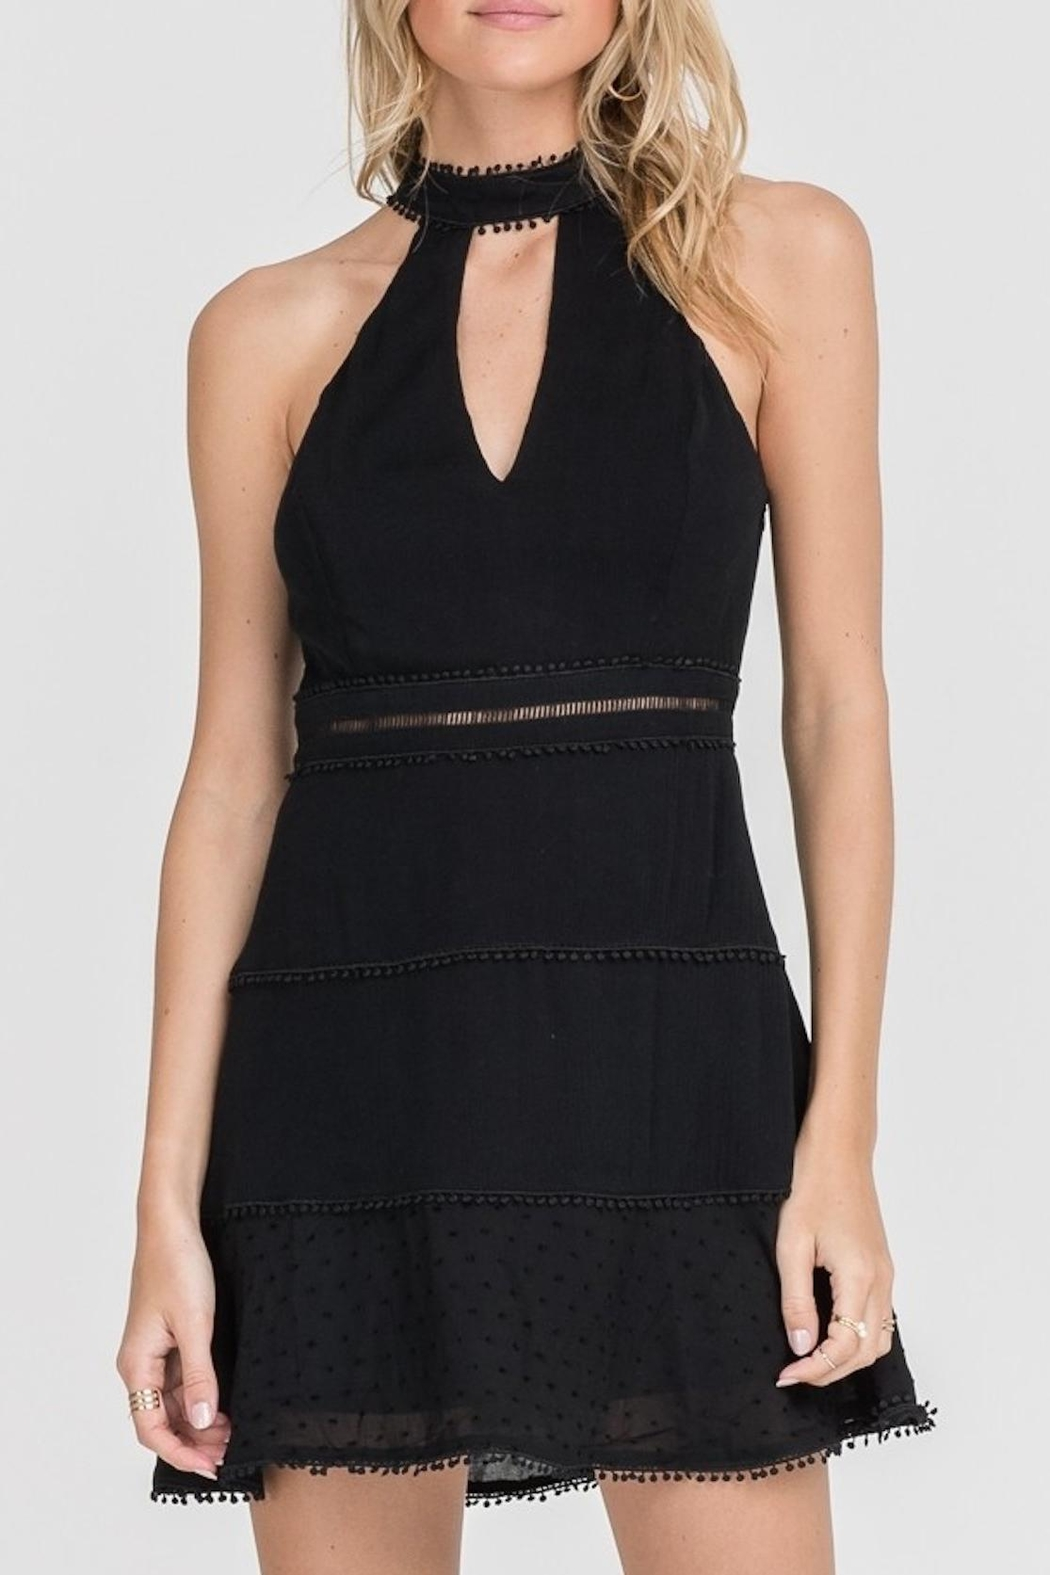 Lush Clothing  High-Neck Mini Dress - Main Image